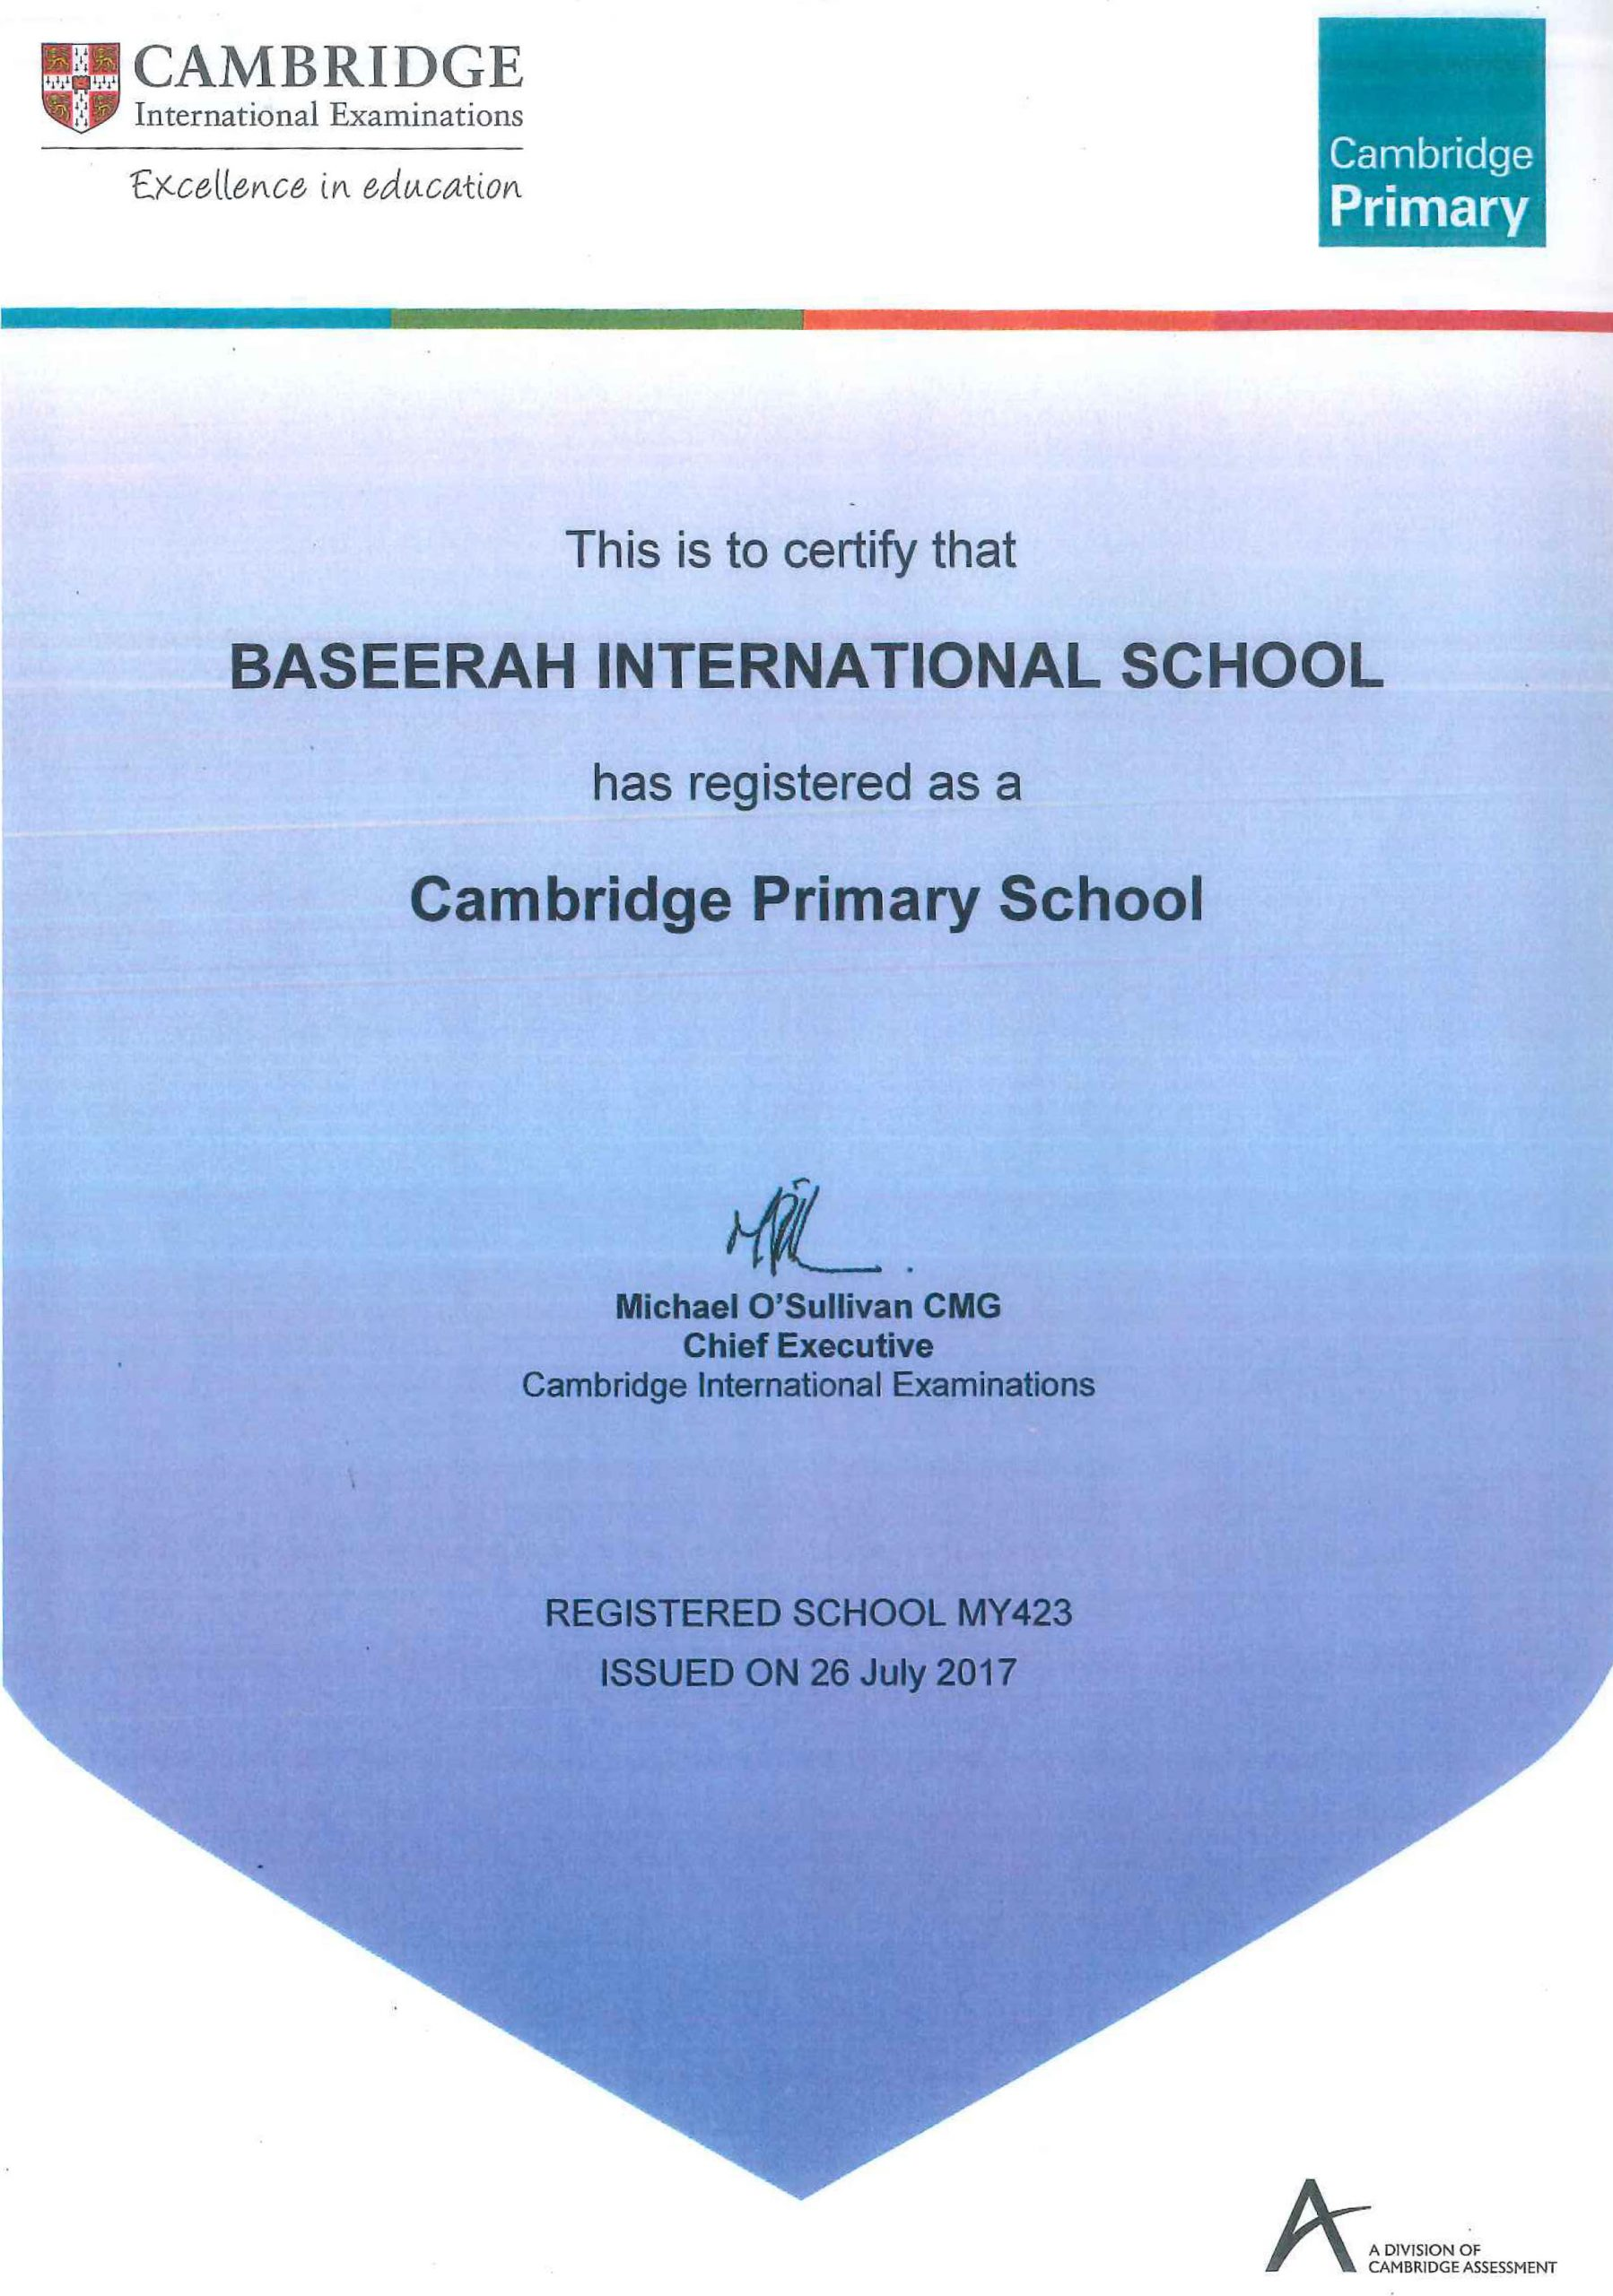 Registration Certificate as Cambridge Primary School